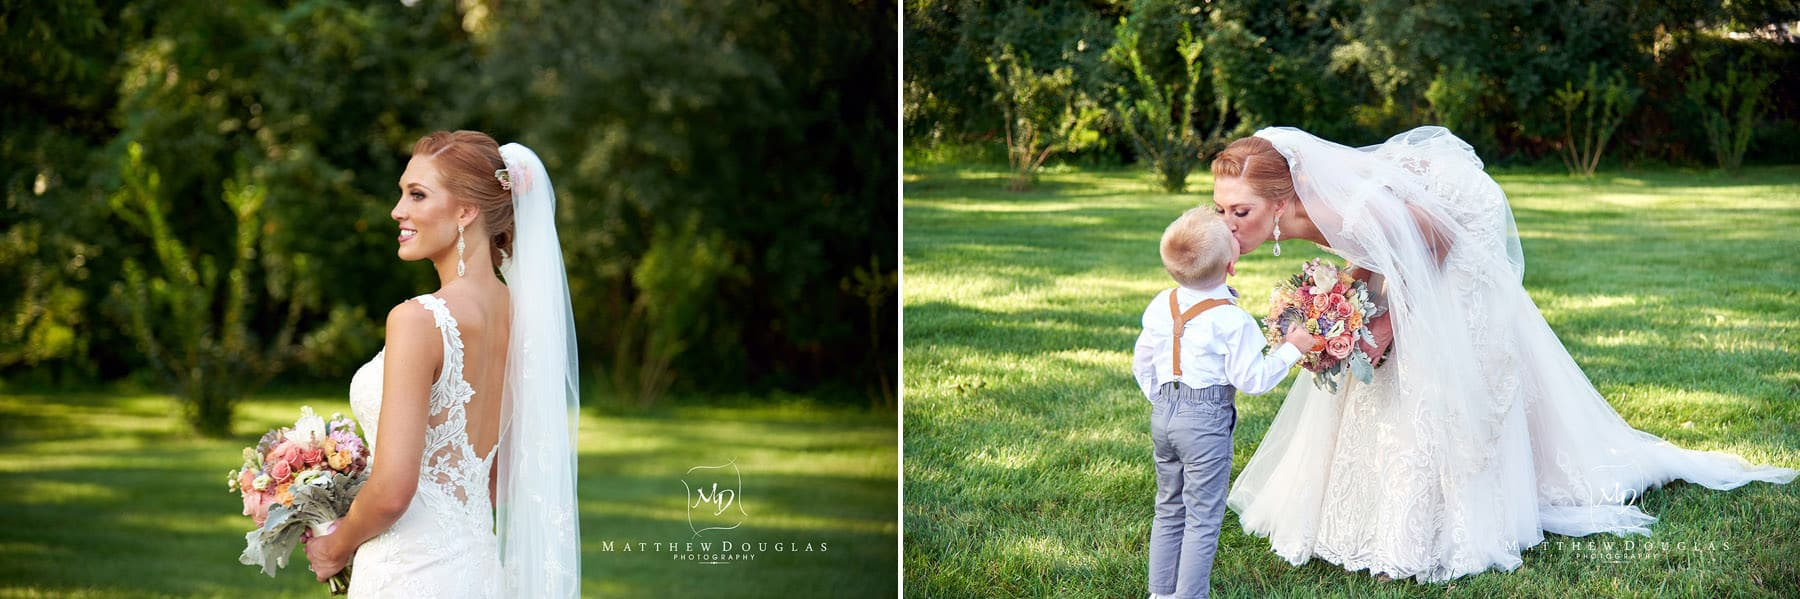 bride with her ringbearer at The Farmhouse at The Grand Colonial